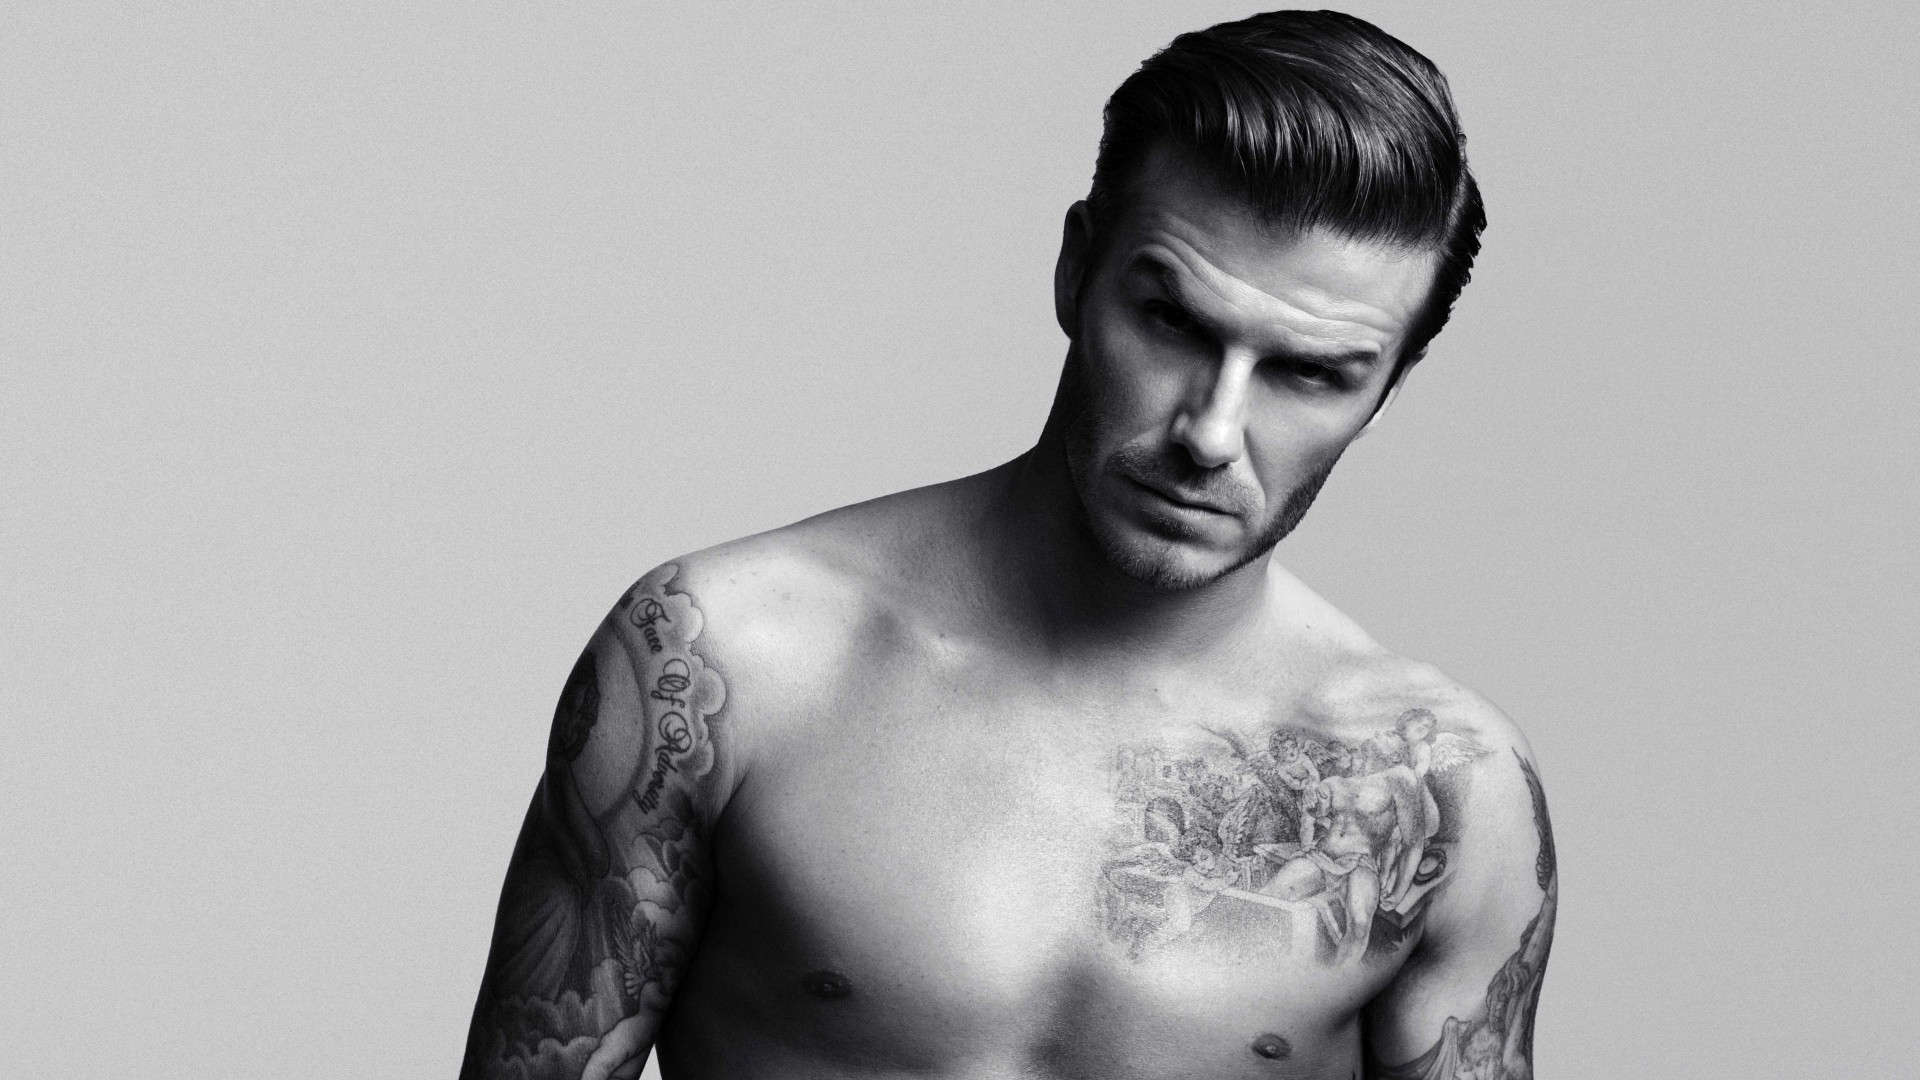 hd wallpaper david beckham wallpapers55com   Best Wallpapers for 1920x1080